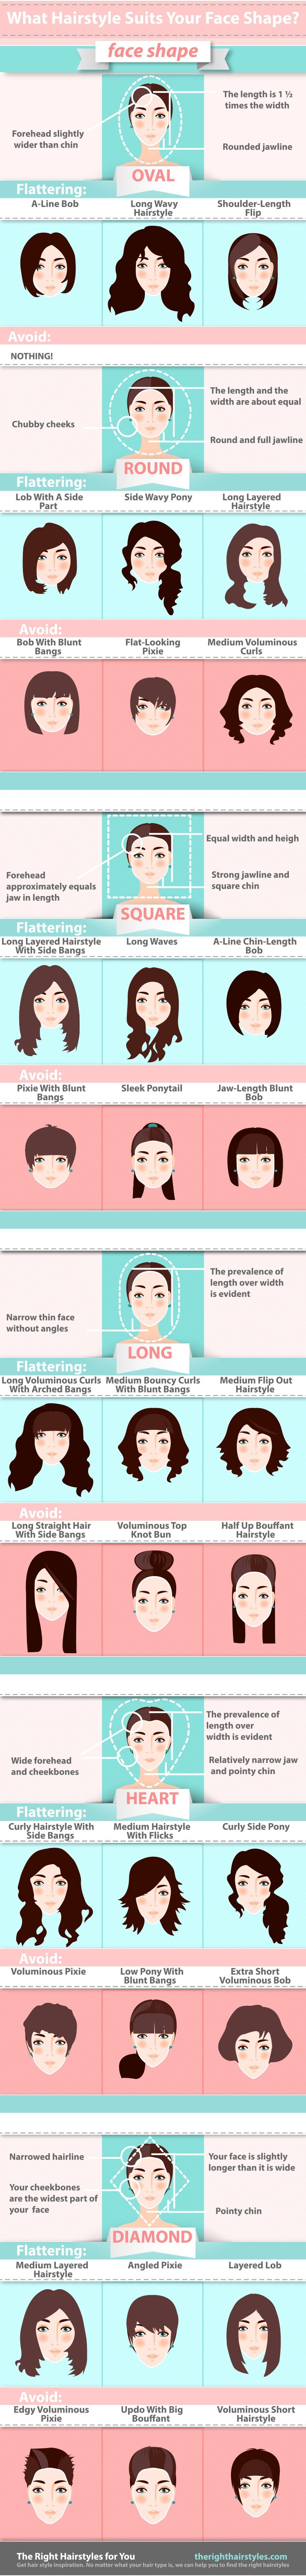 What Hairstyle Suits You According To Your Face Shape Hairstyles